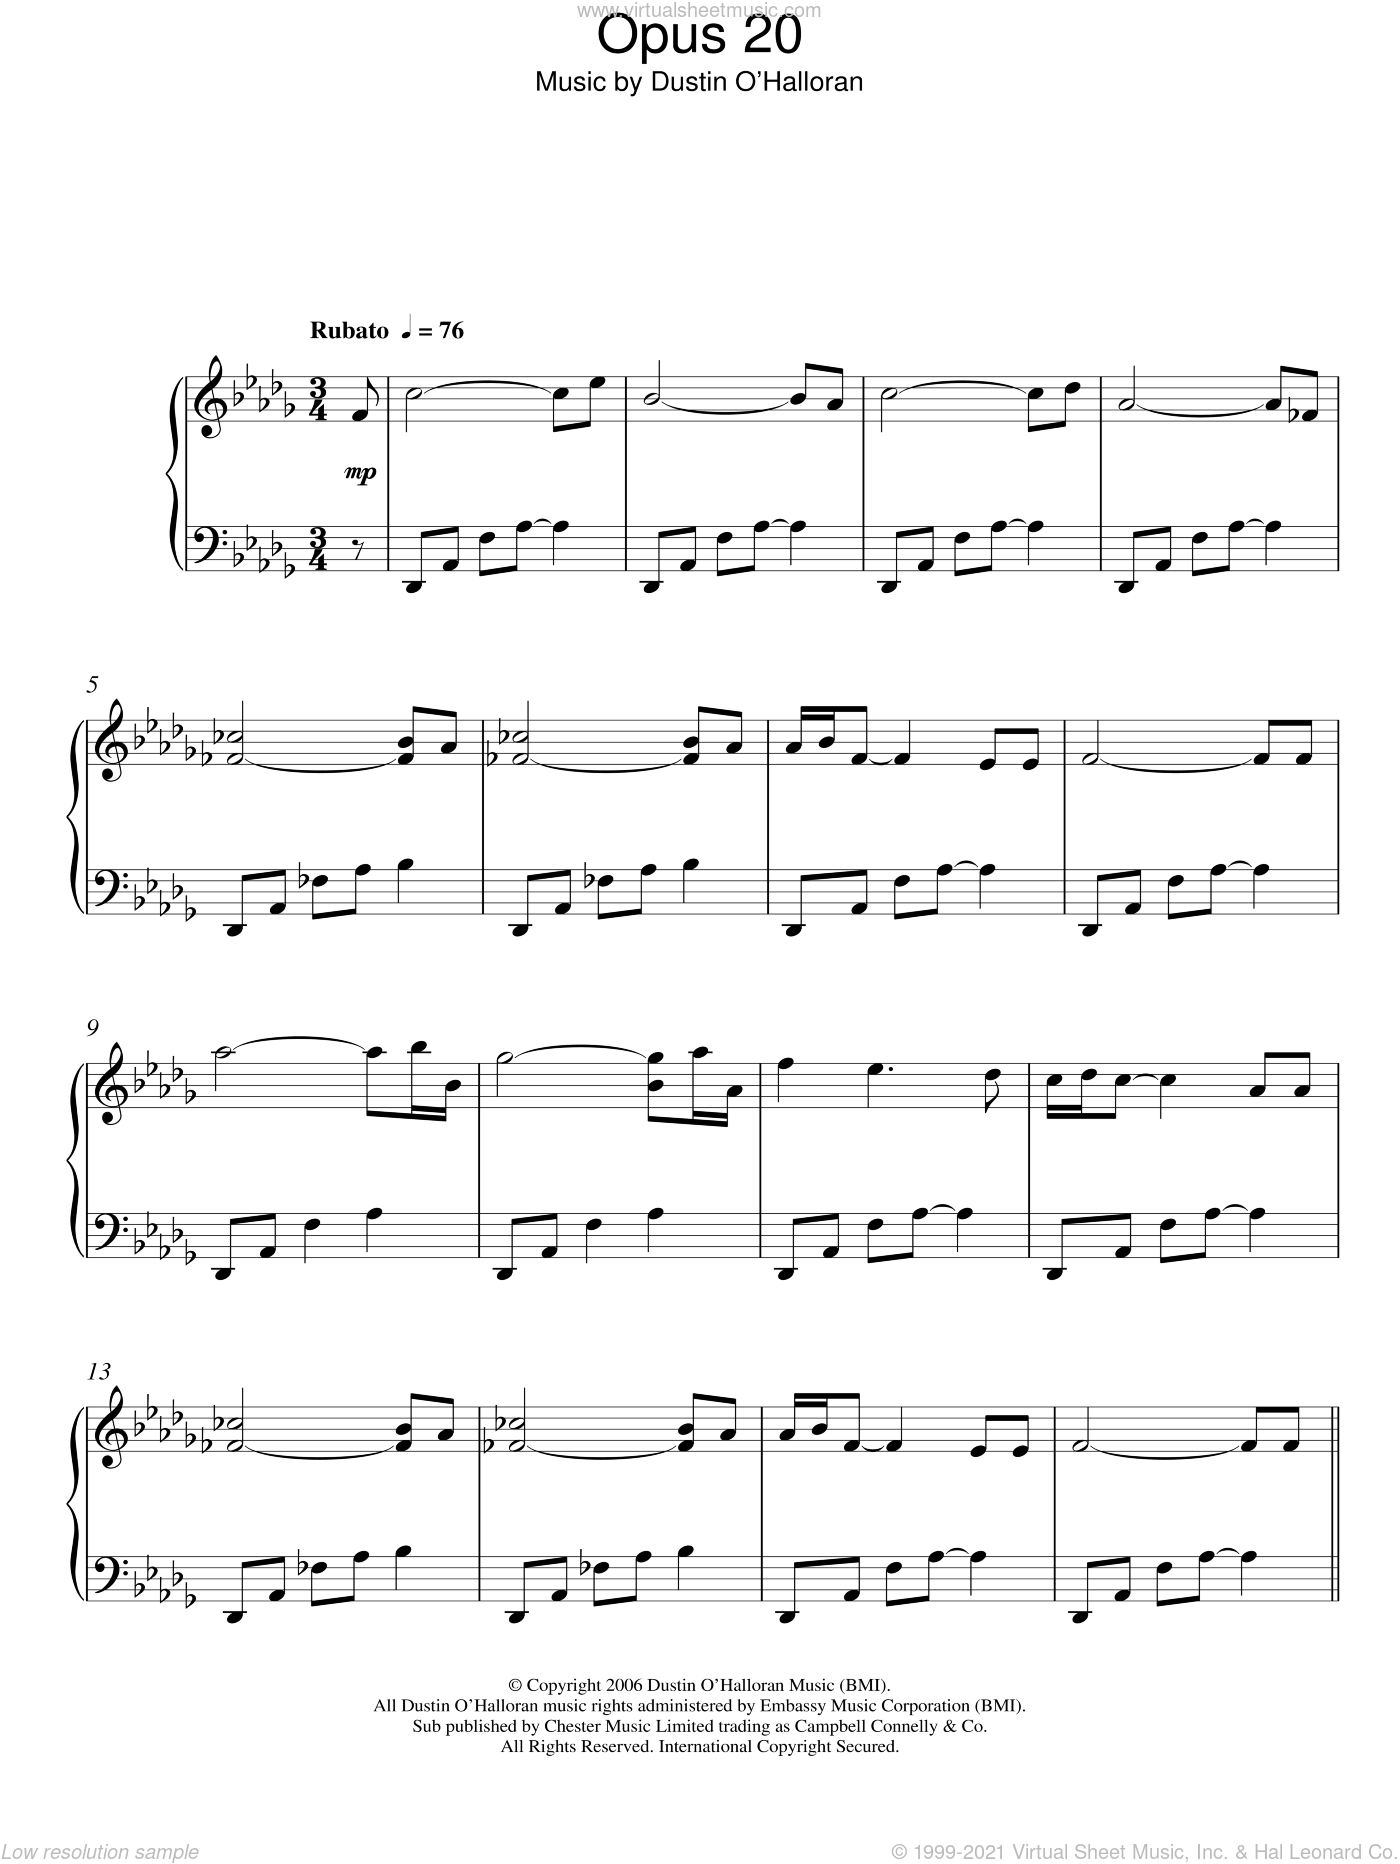 Opus 20 sheet music for piano solo by Dustin O'Halloran